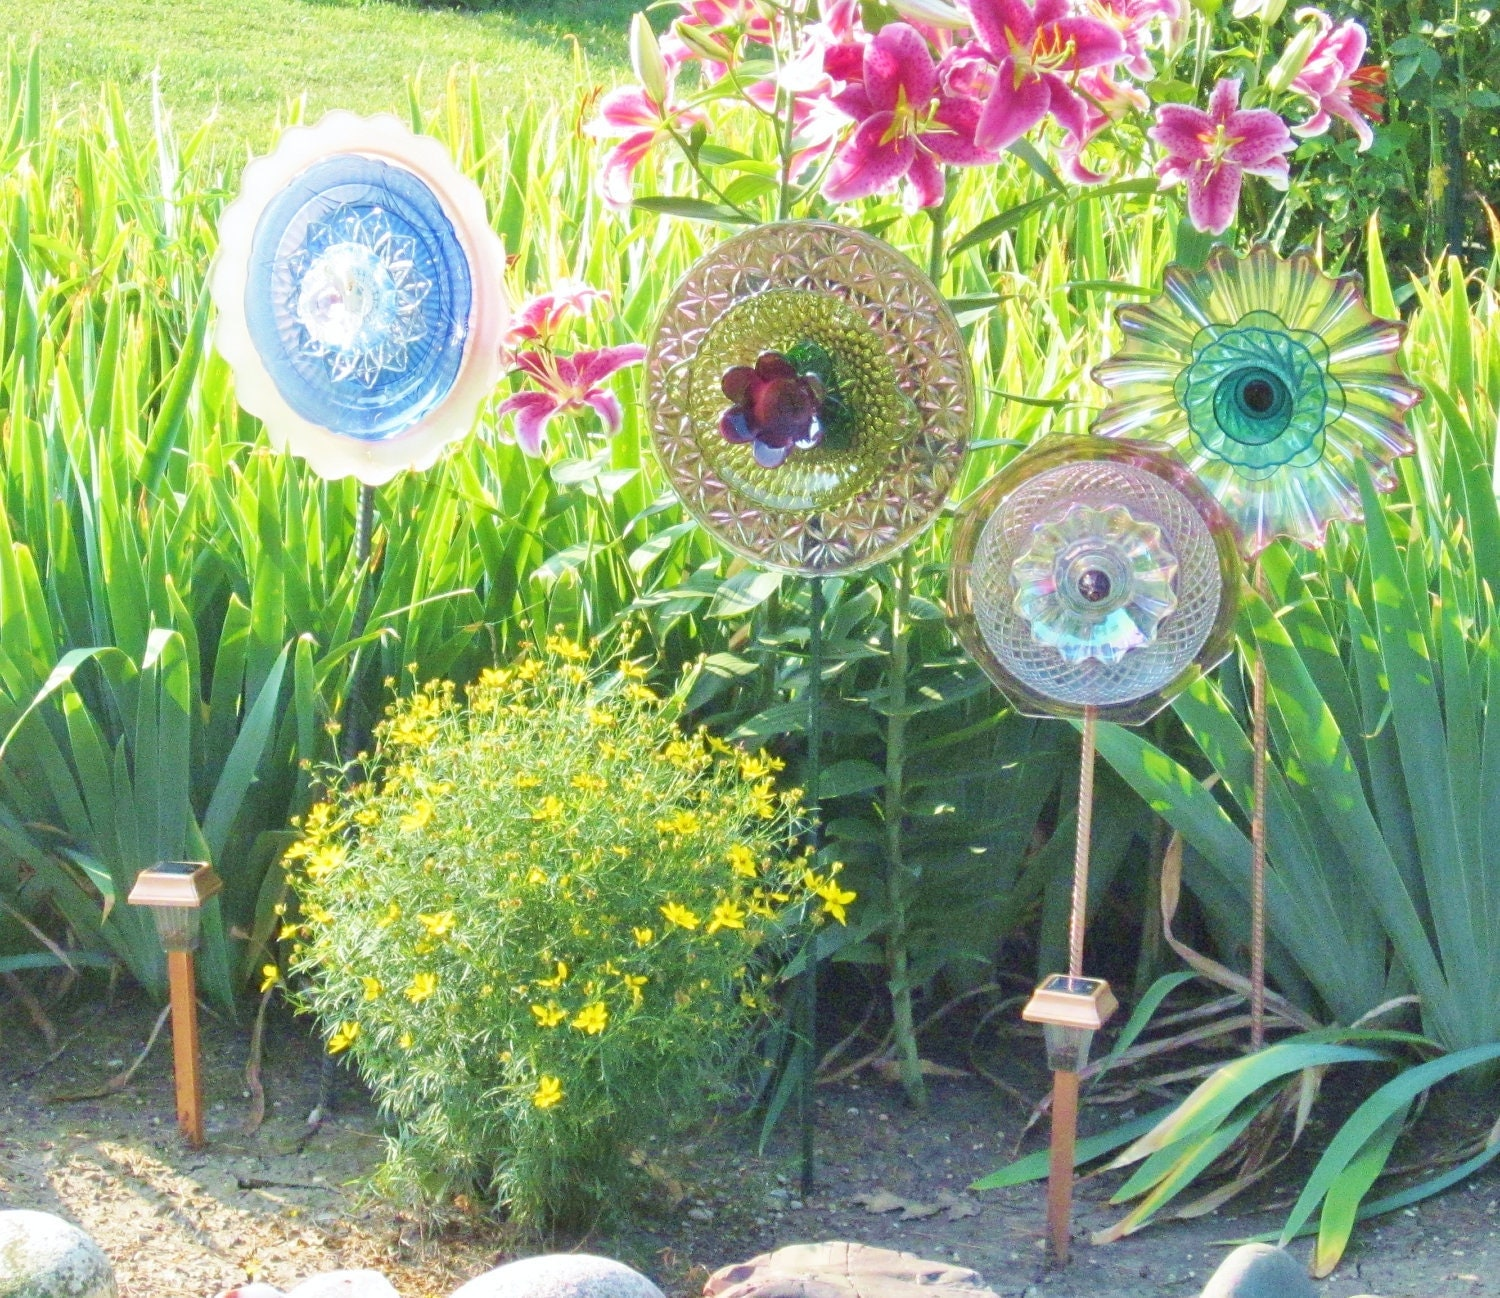 Garden flower outdoor decor recycled glass plate by jarmfarm for Garden decorations from recycled materials